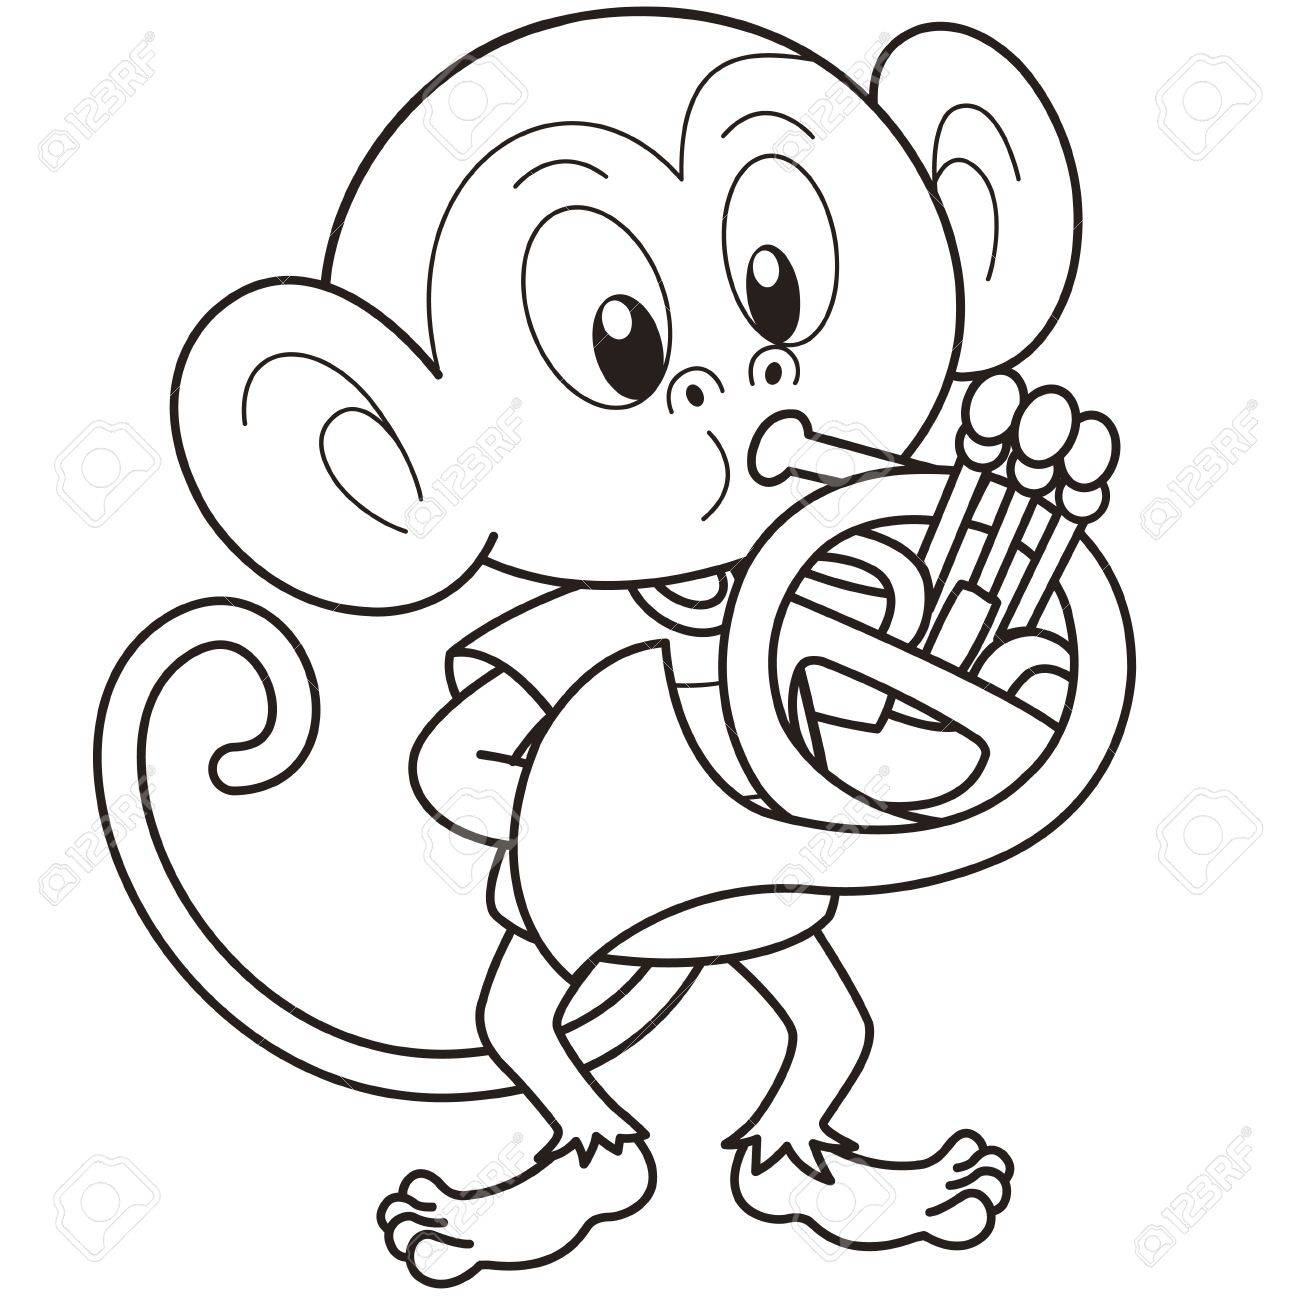 Cartoon Monkey Playing A French Horn Black And White Stock Vector